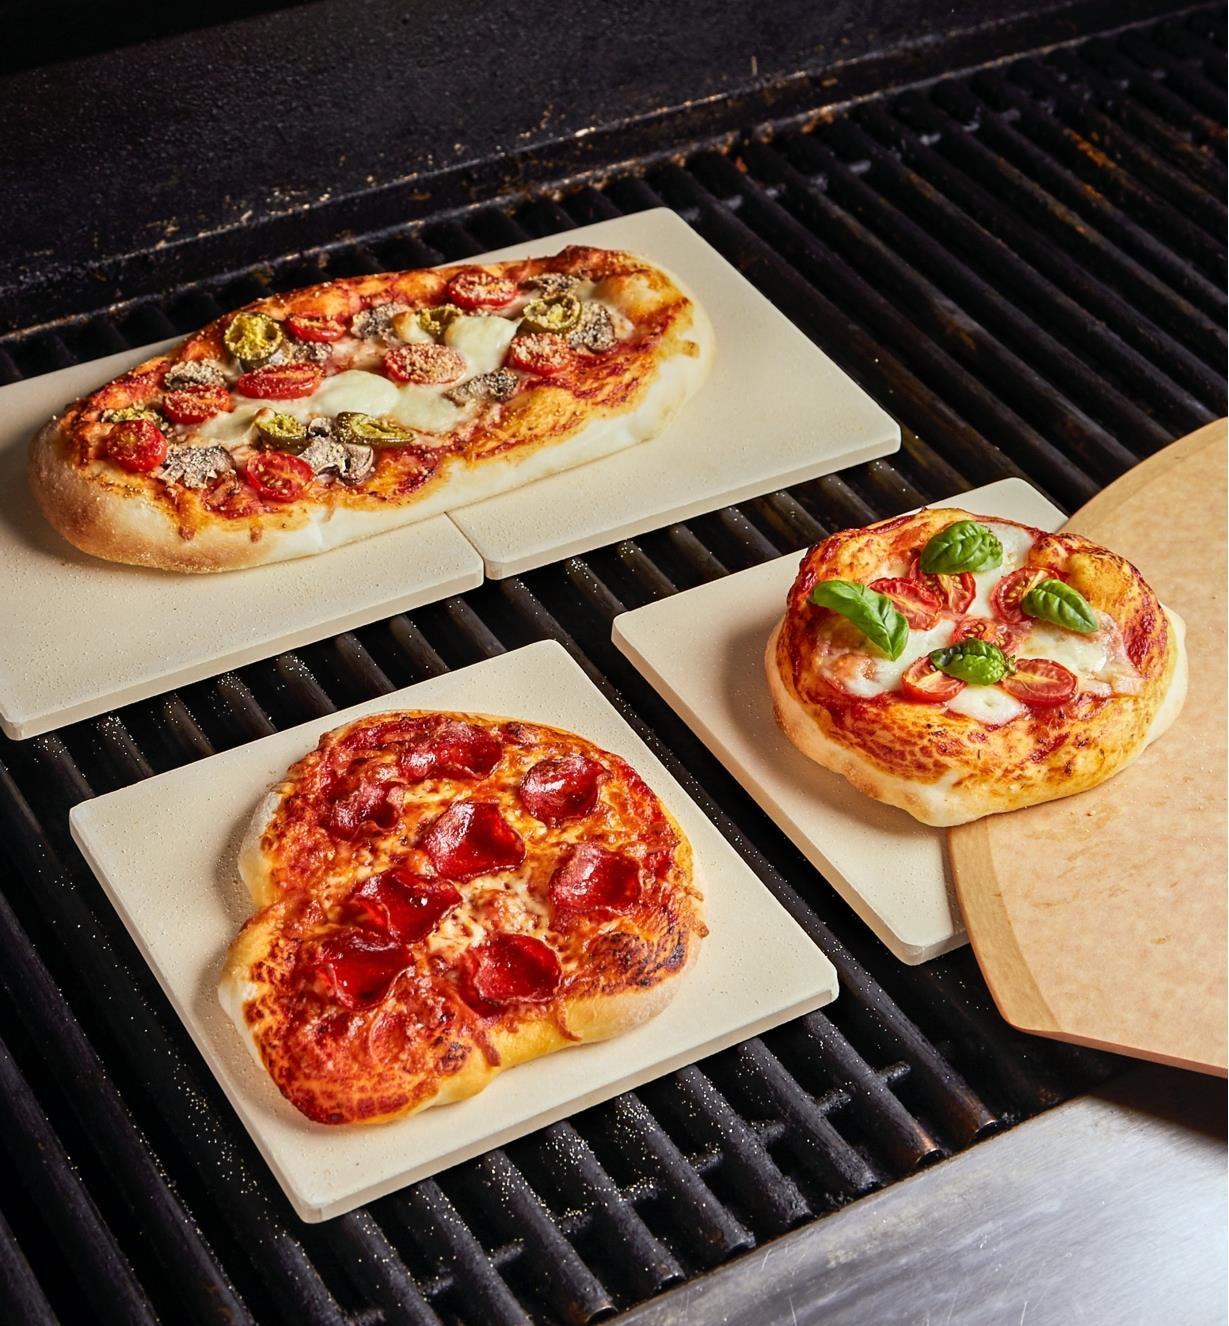 Homemade pizzas cooking on barbecue pizza stones in a barbecue